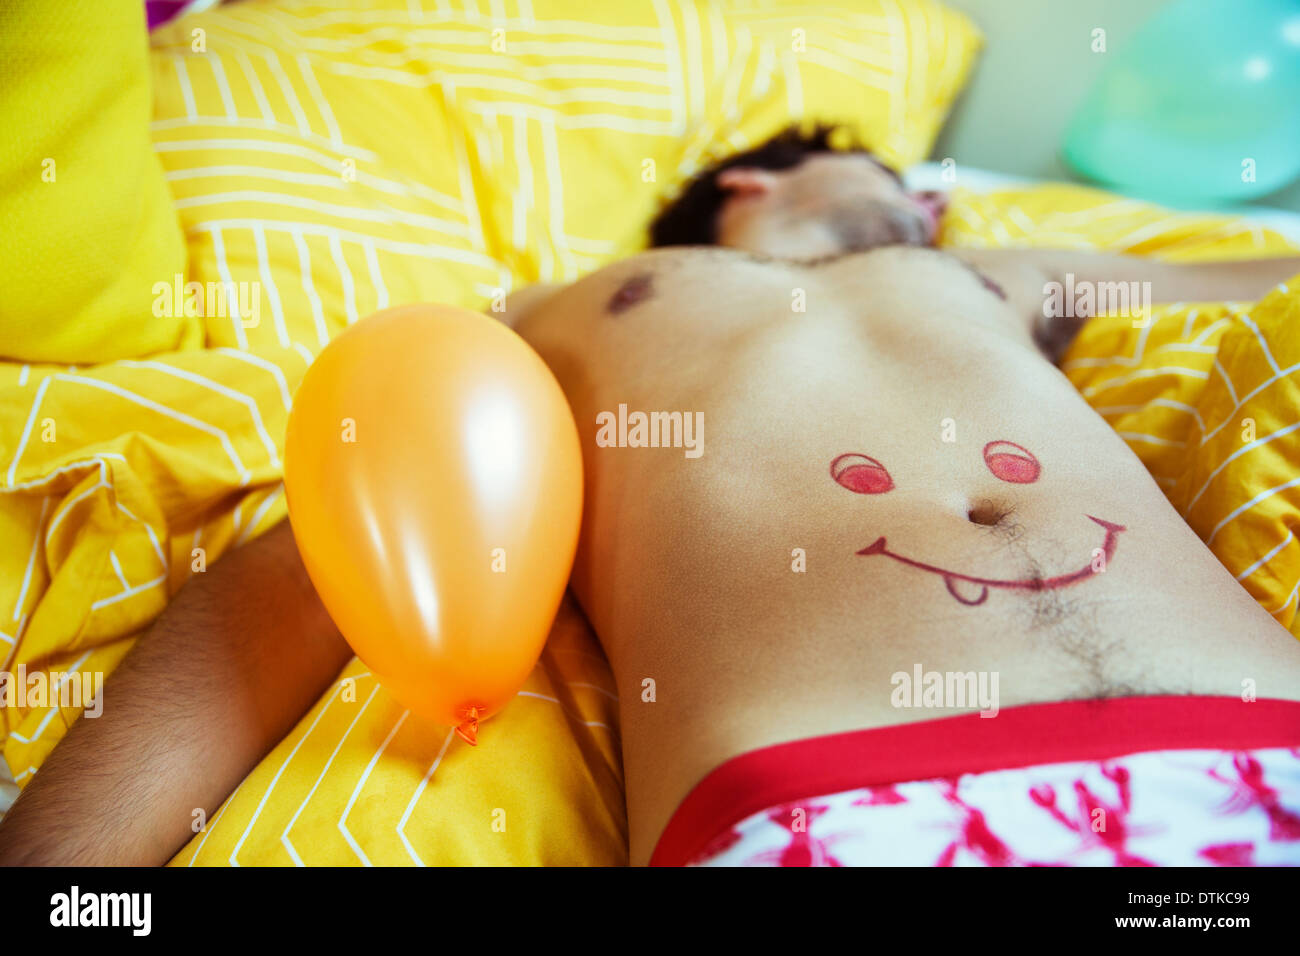 Man with smiley face drawing on belly sleeping after party - Stock Image